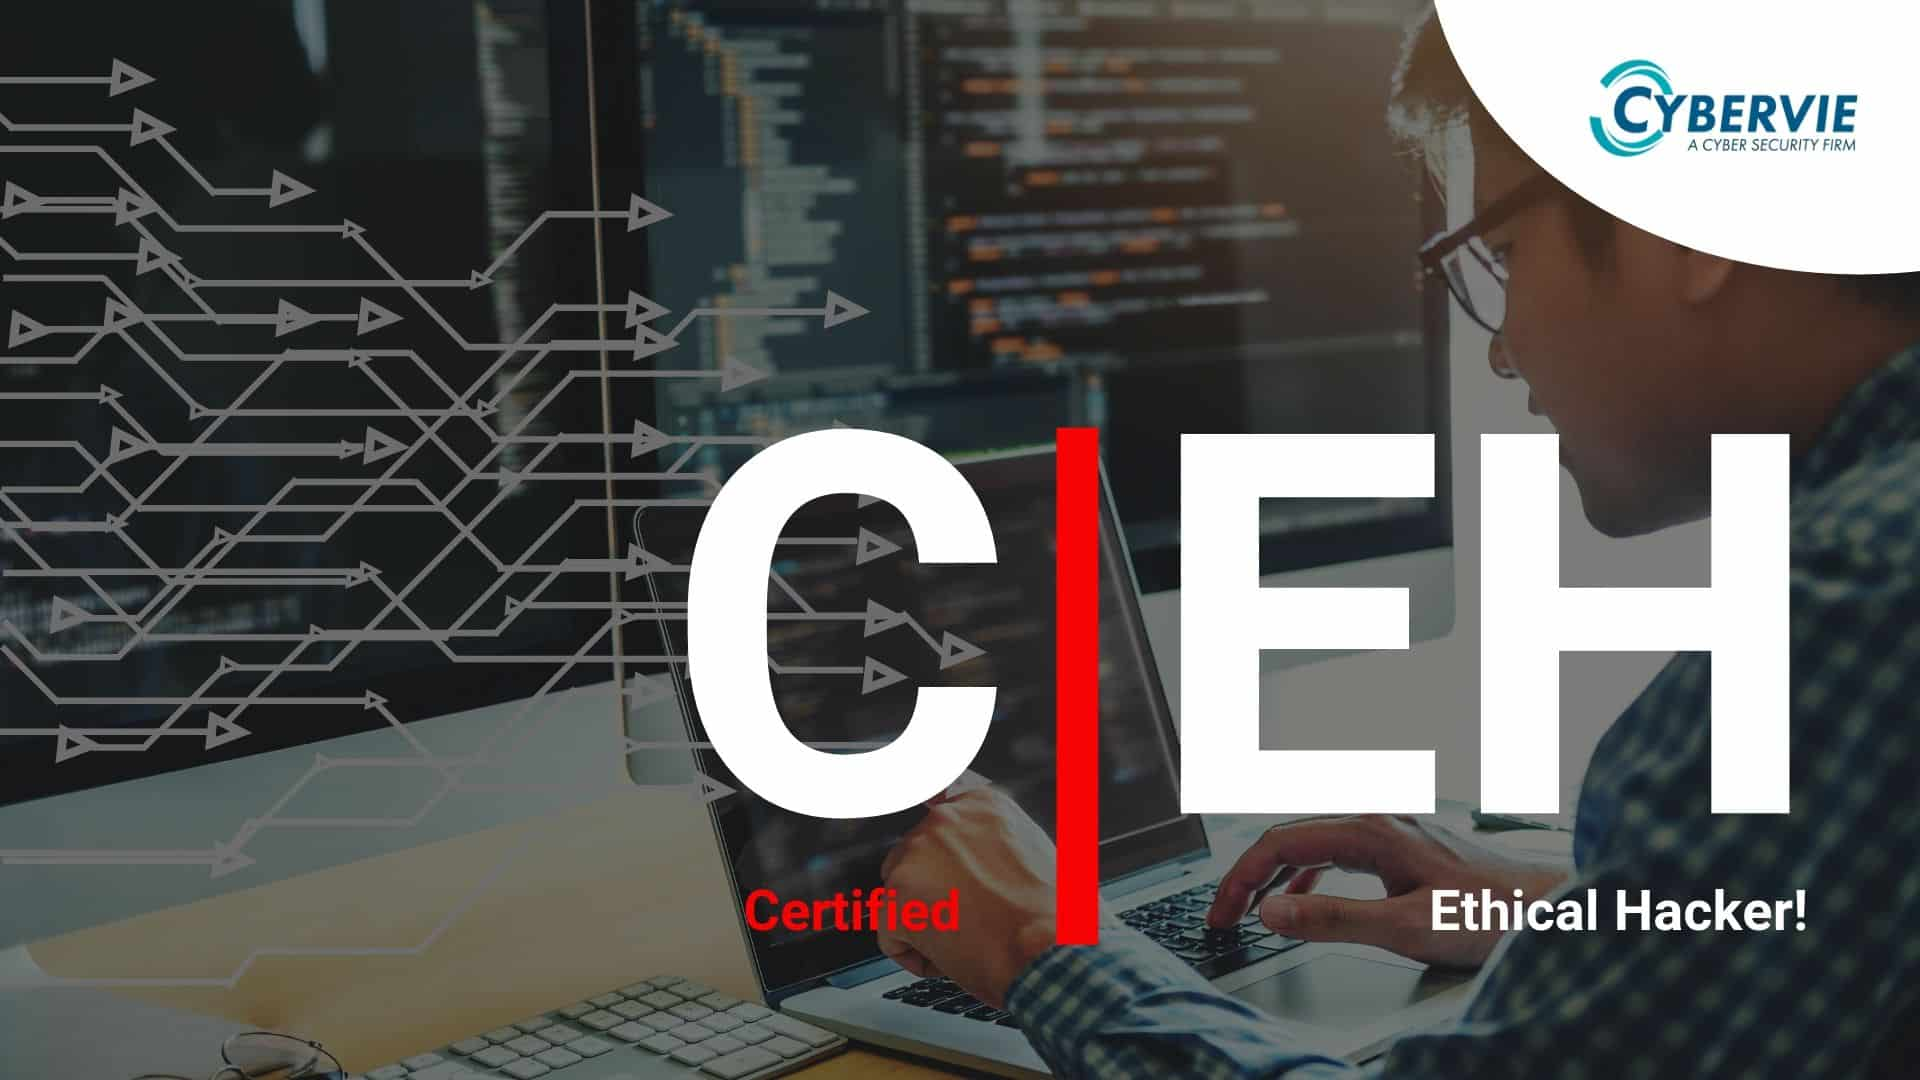 CEH - Certified Ethical Hacking Course By Cybervie